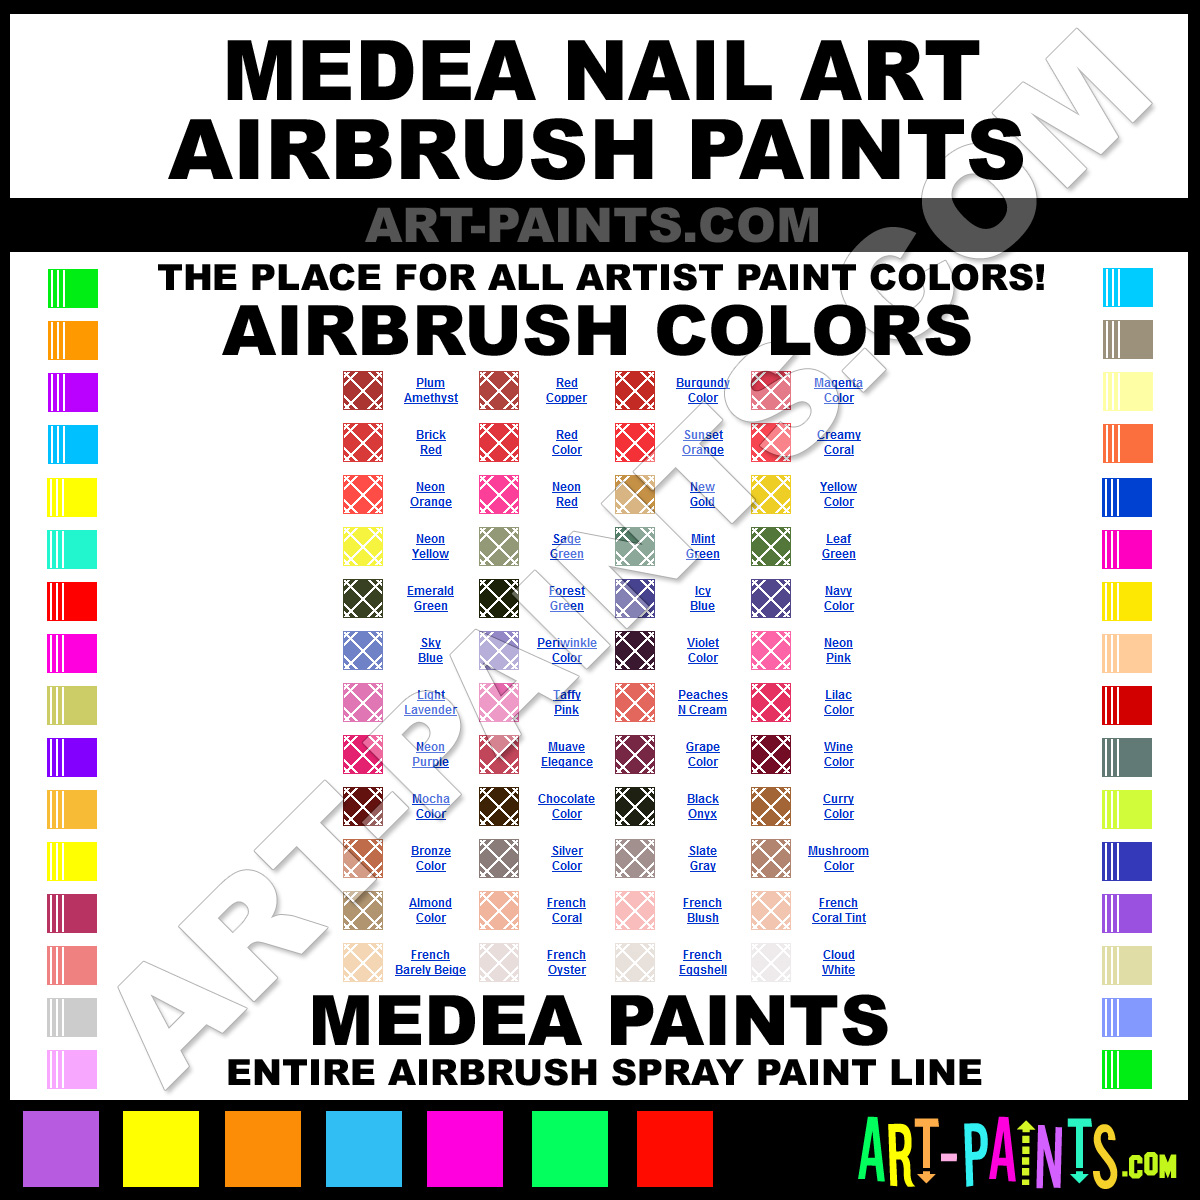 Amazon.com: Pro Airbrush Nail Art Paint Stencil Kit Design Set 9